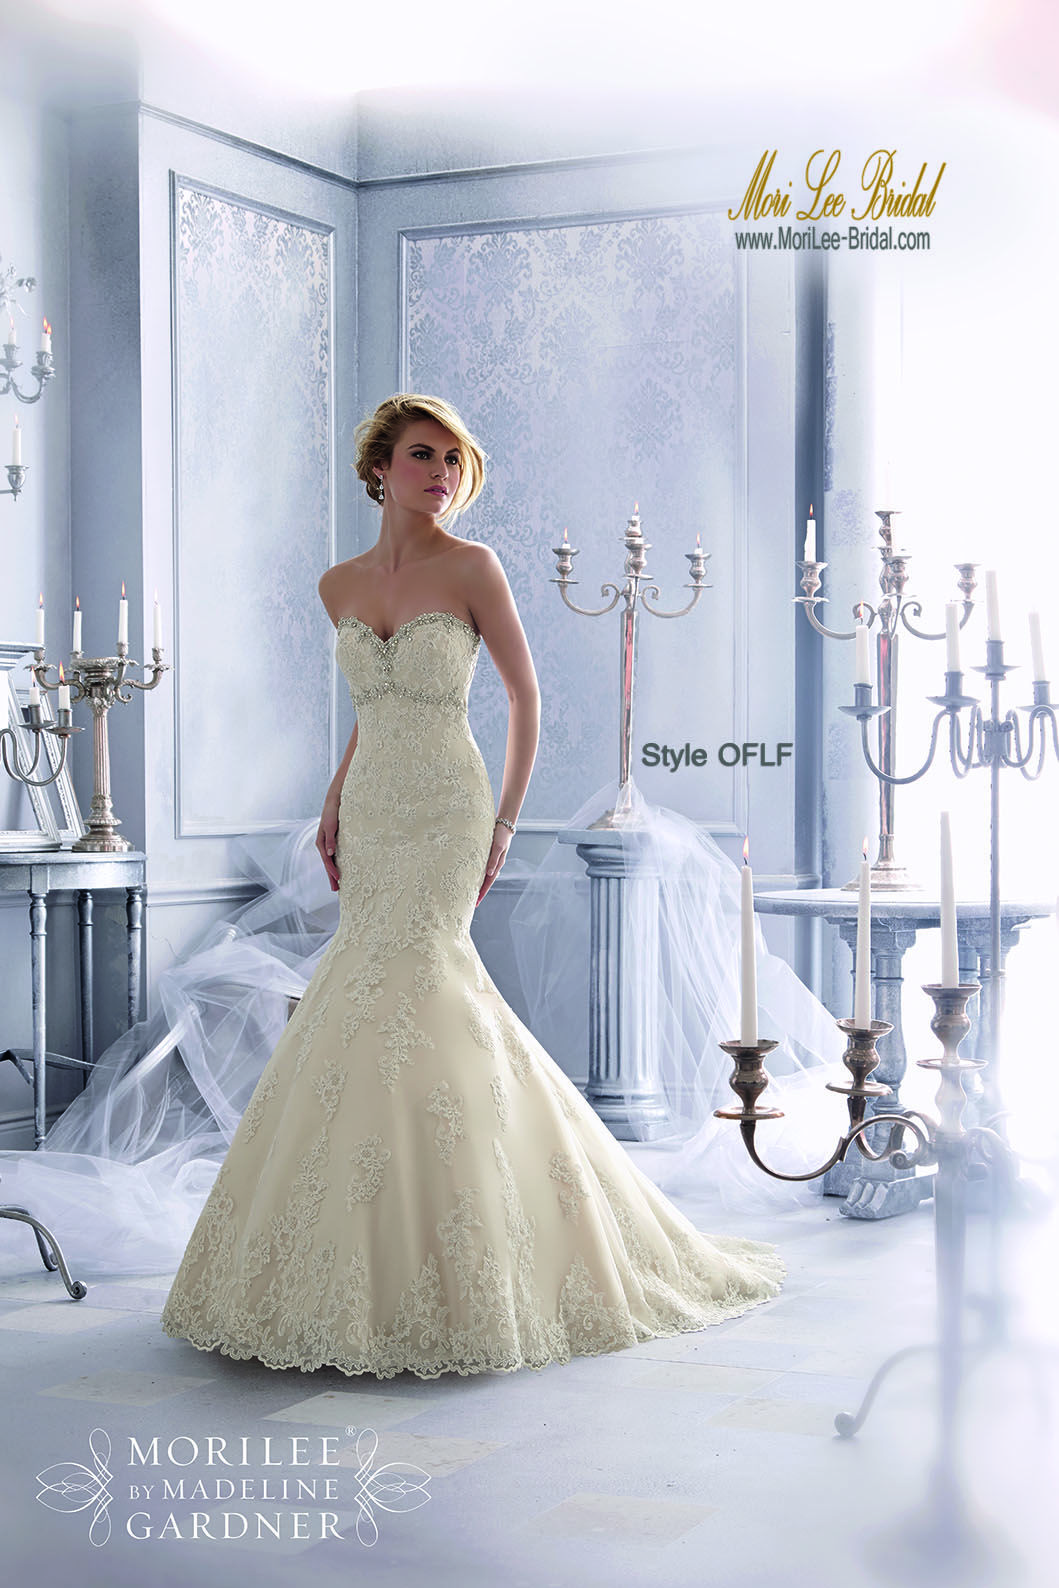 Color embroidered wedding dress  Style OFLF Diamante Beaing Trims the Embroidered Appliques on this